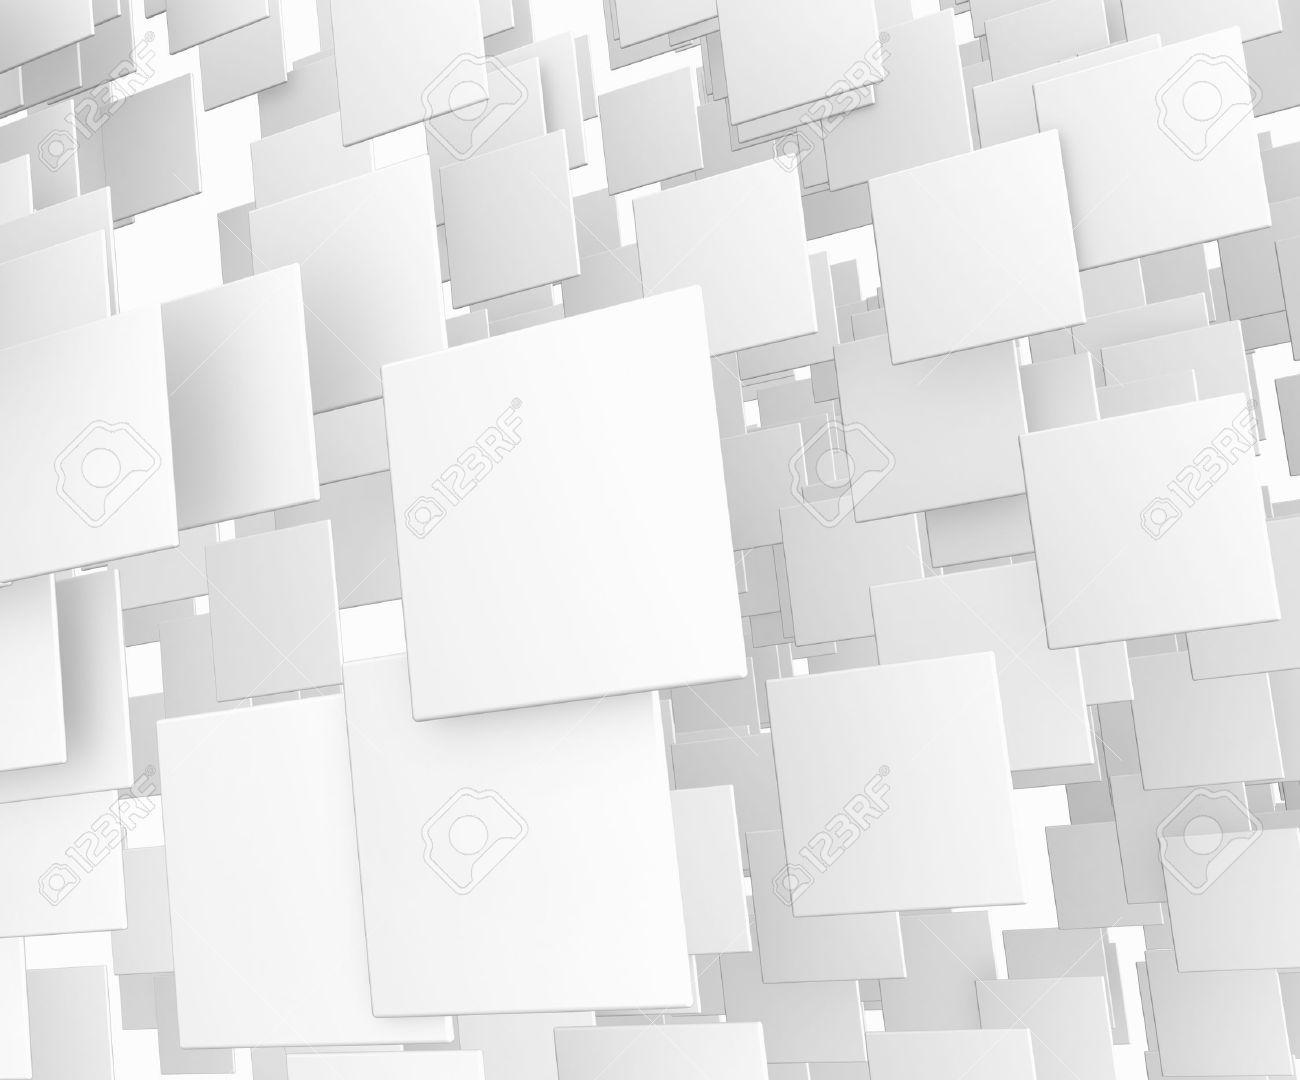 Abstract Images With White Backgrounds - Wallpaper Cave